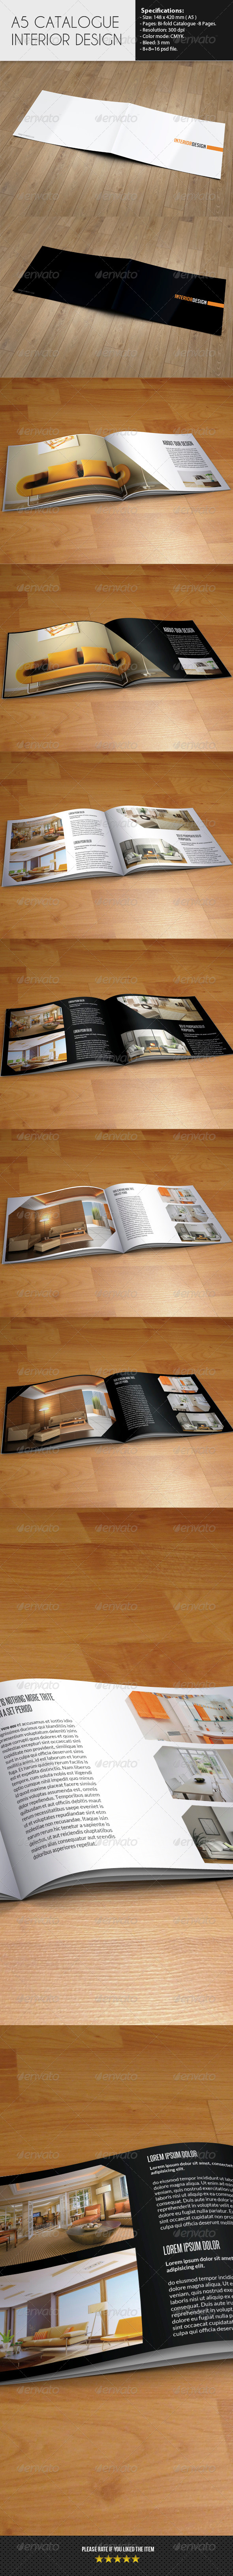 Interior Catalogue - Catalogs Brochures